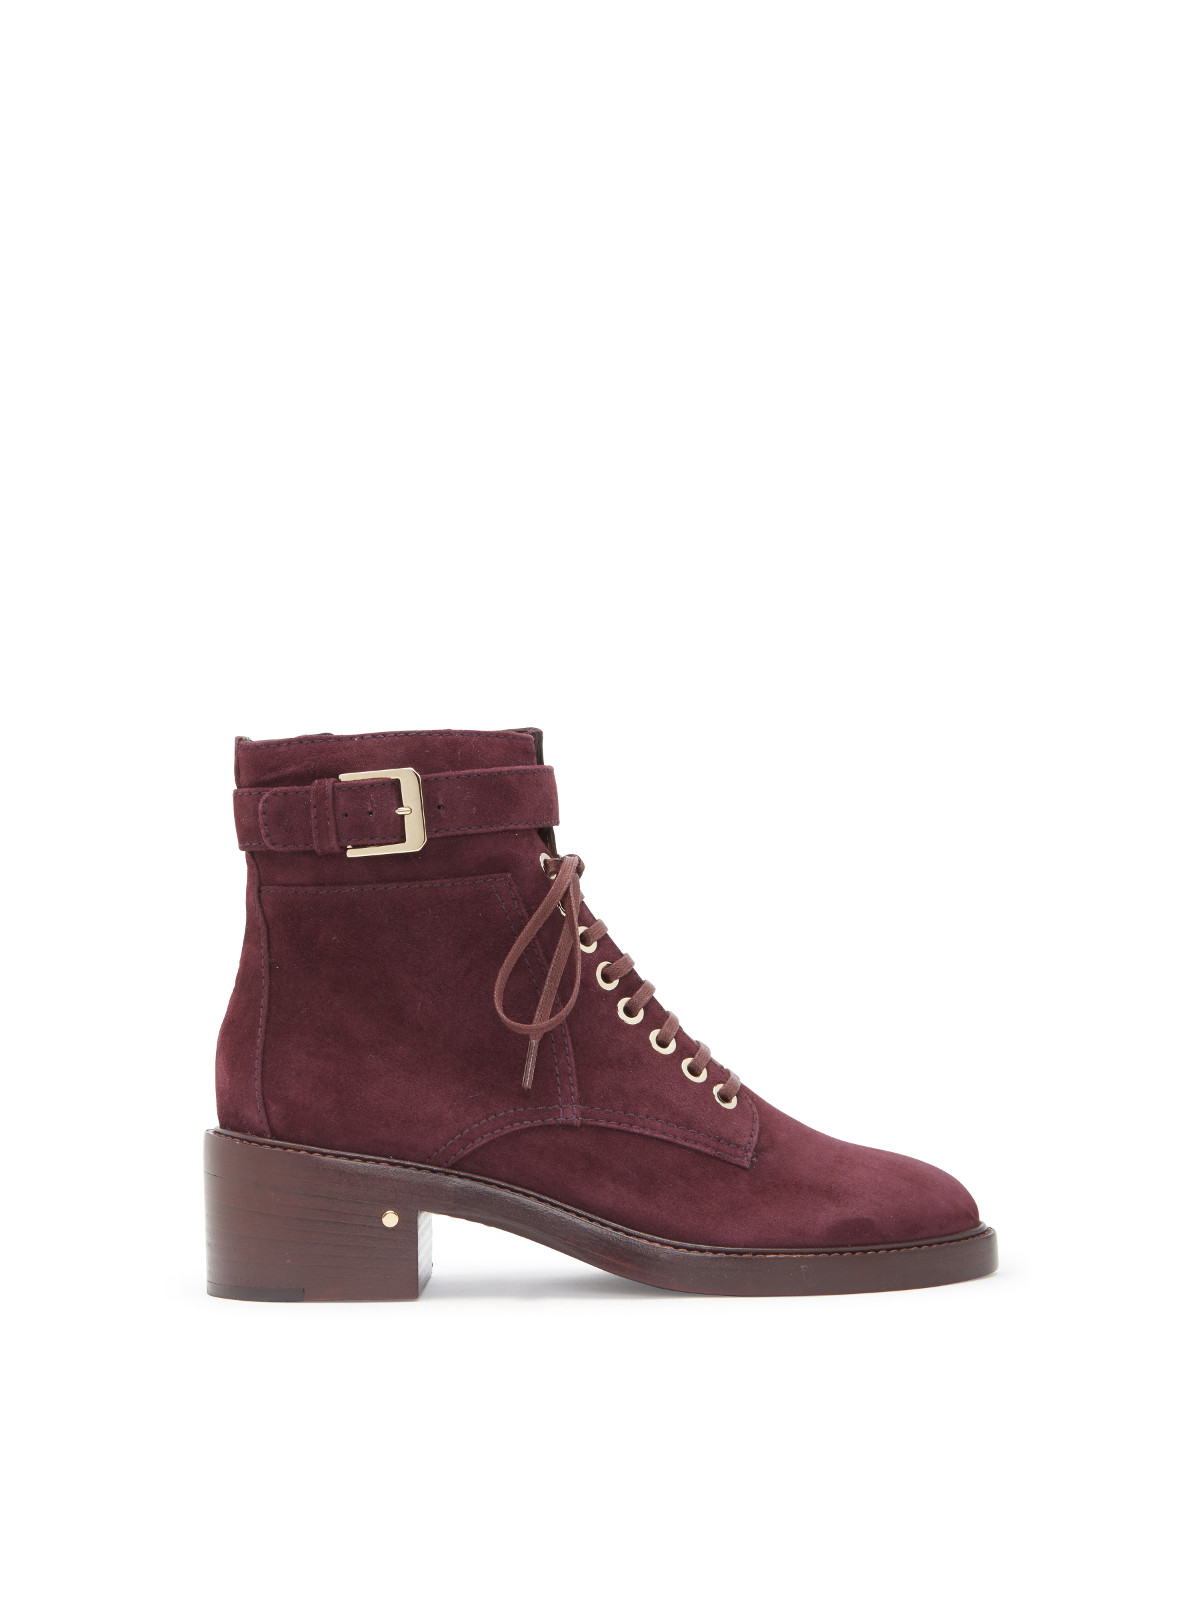 43LDFW19_Solene_Kid-Suede_Purple_8387.jpg